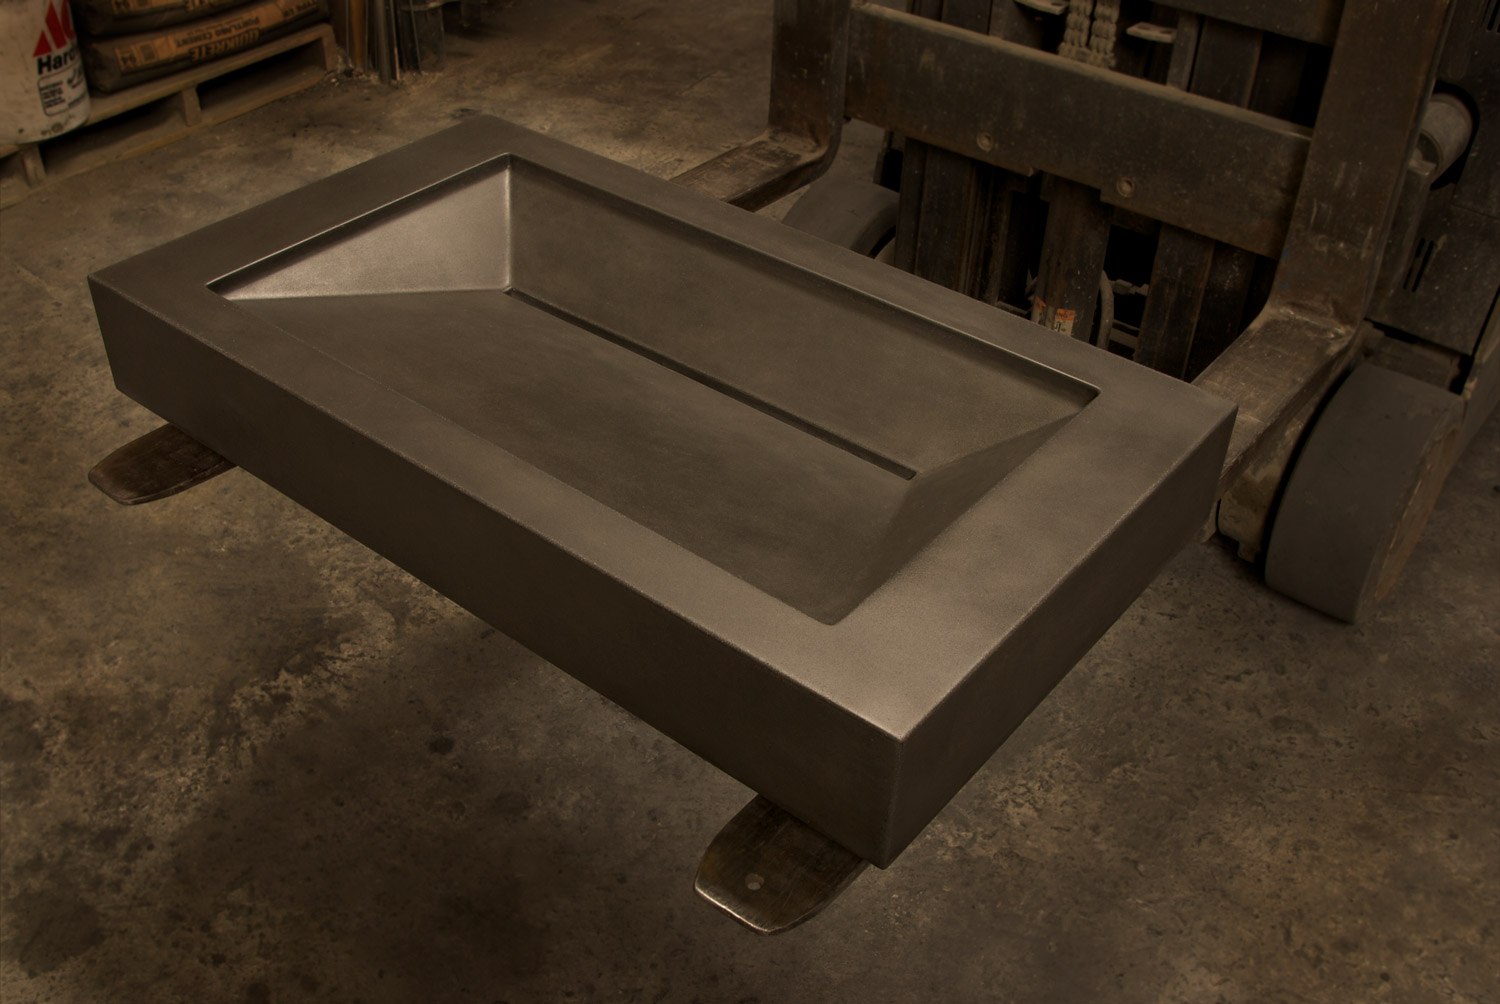 ADA compliant concrete ramp sink, shown here in charcoal colored gfrc